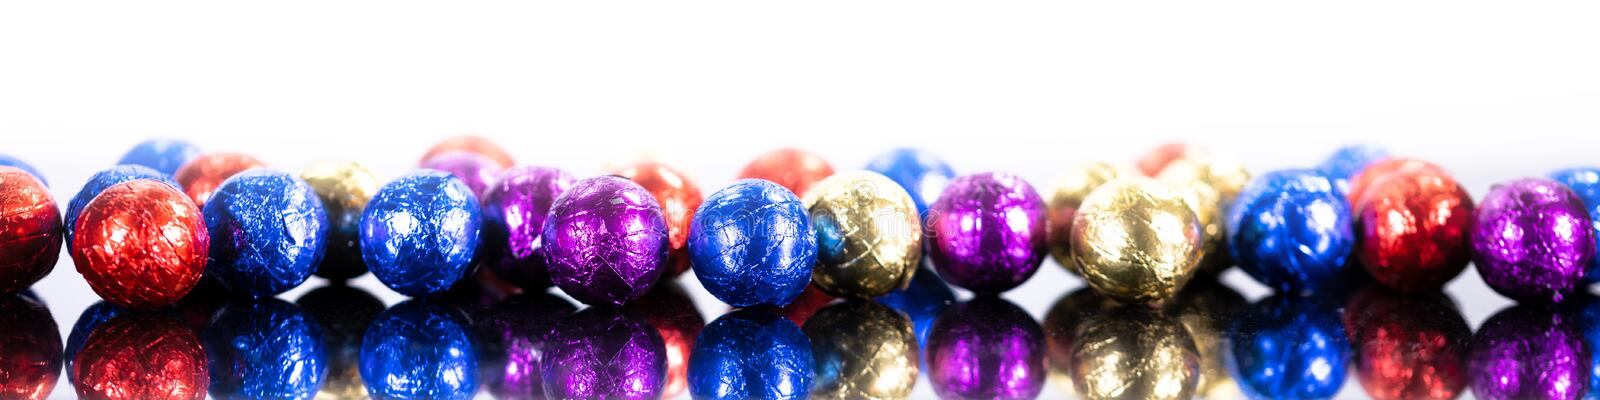 Panorama with colorful chocolate balls in front of white background royalty free stock images